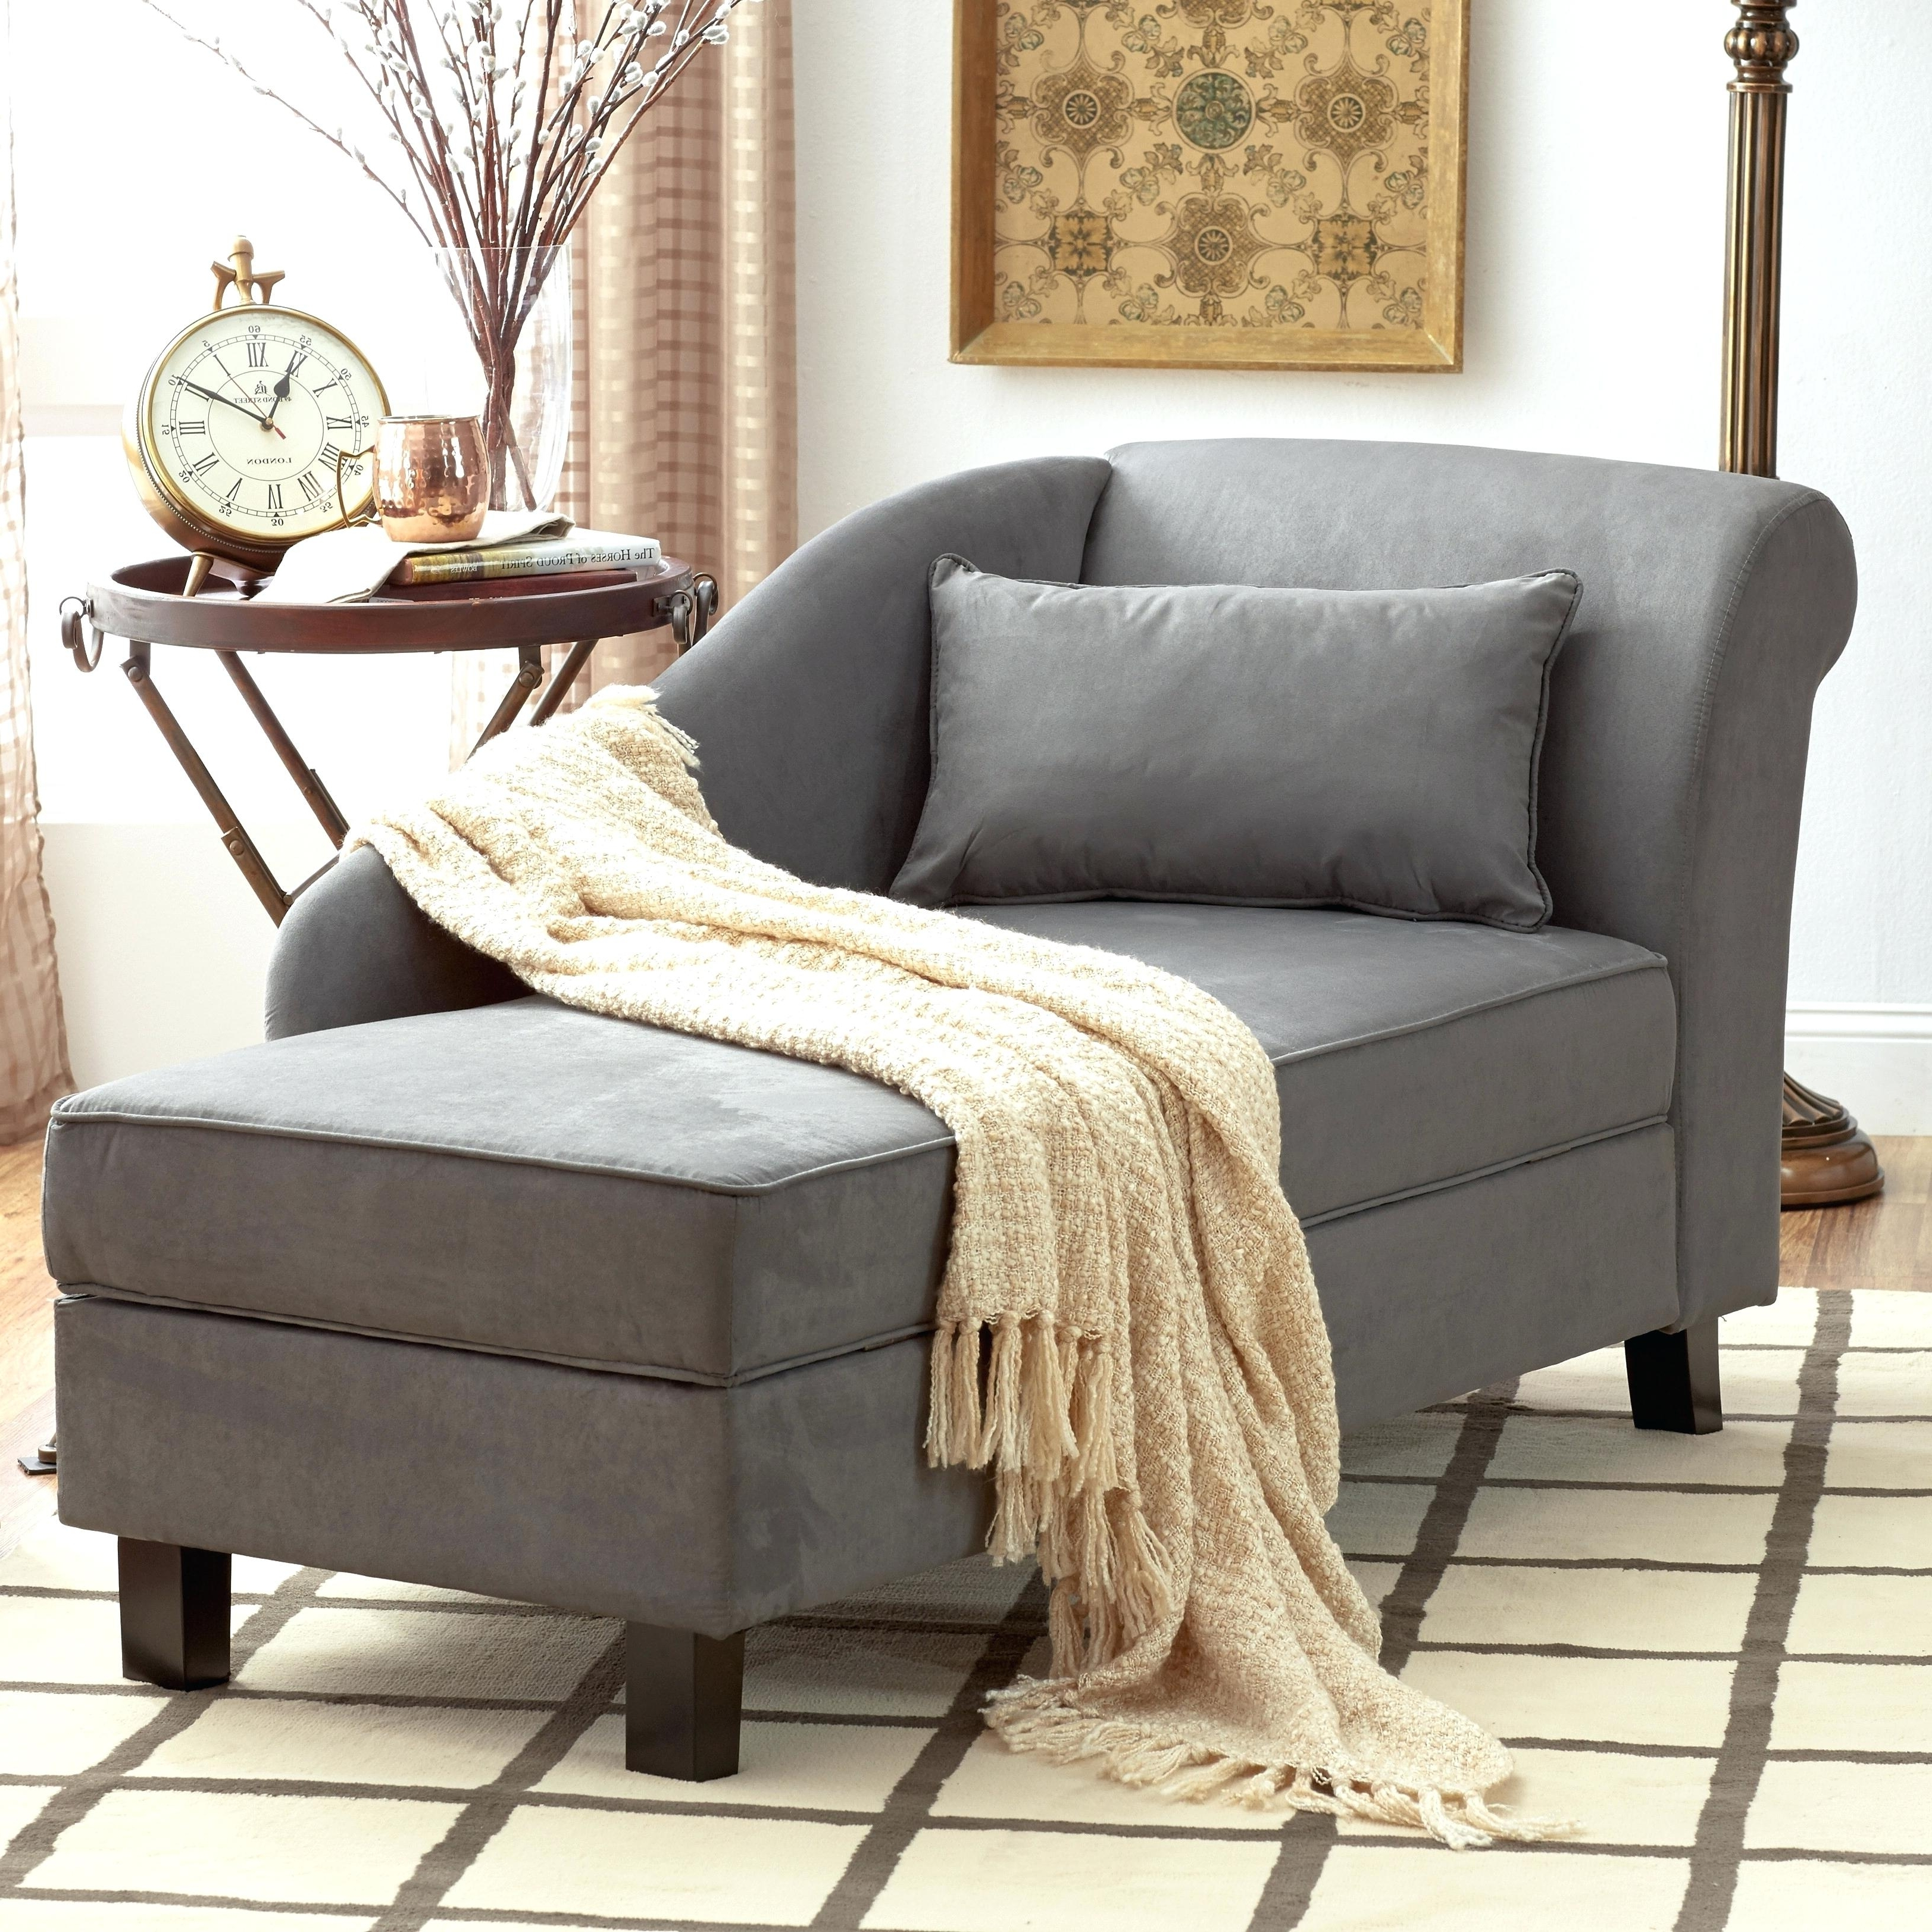 Decoration: Contemporary Chaise Lounge Inside Most Recent Chaise Chairs For Living Room (View 7 of 15)